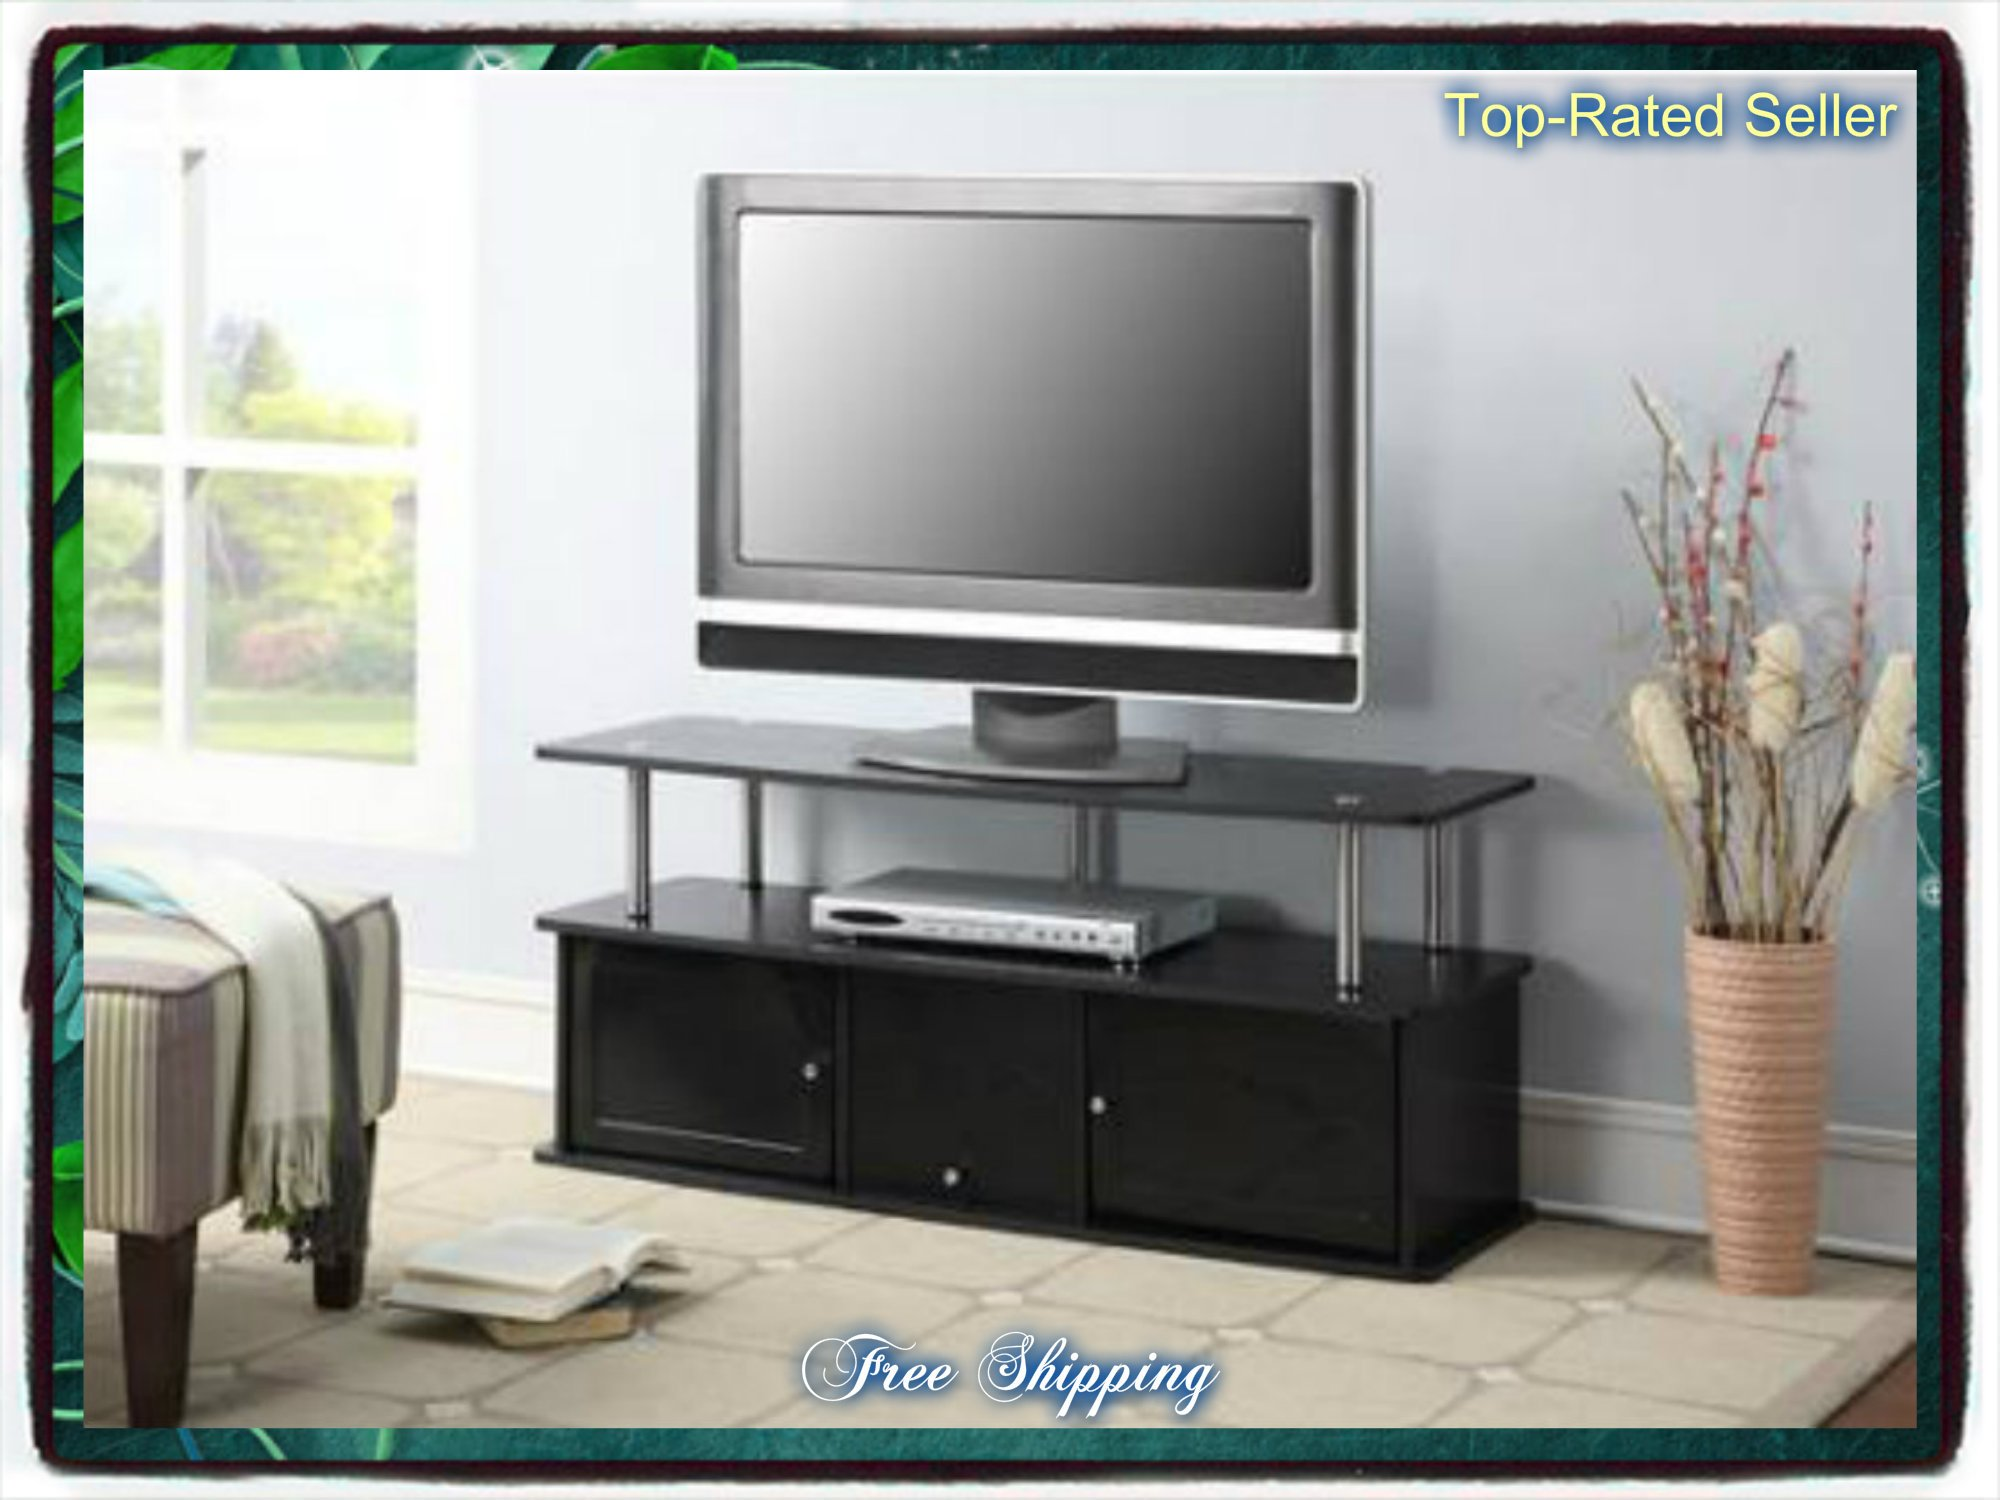 Black Tv Stand Media Entertainment Center 42 50 60 Inch Flat Screen Television Console Storage Furniture Cabinet Wood Home Modern 3 Cabinets Theater Shelf Shelves Television T.v. New Guarantee - It Comes Only Along with Our Free Ebook by Skroutz